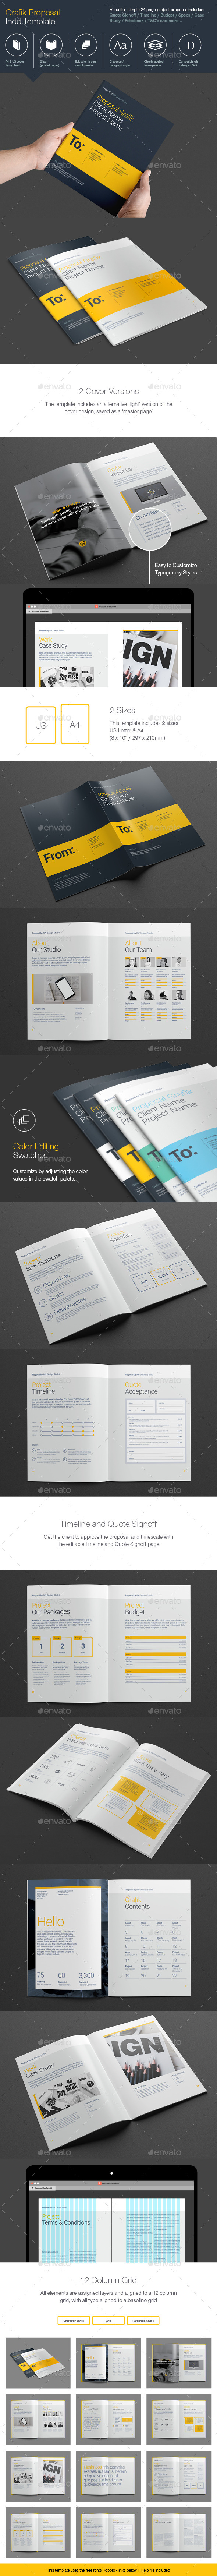 Grafik Proposal - Proposals & Invoices Stationery